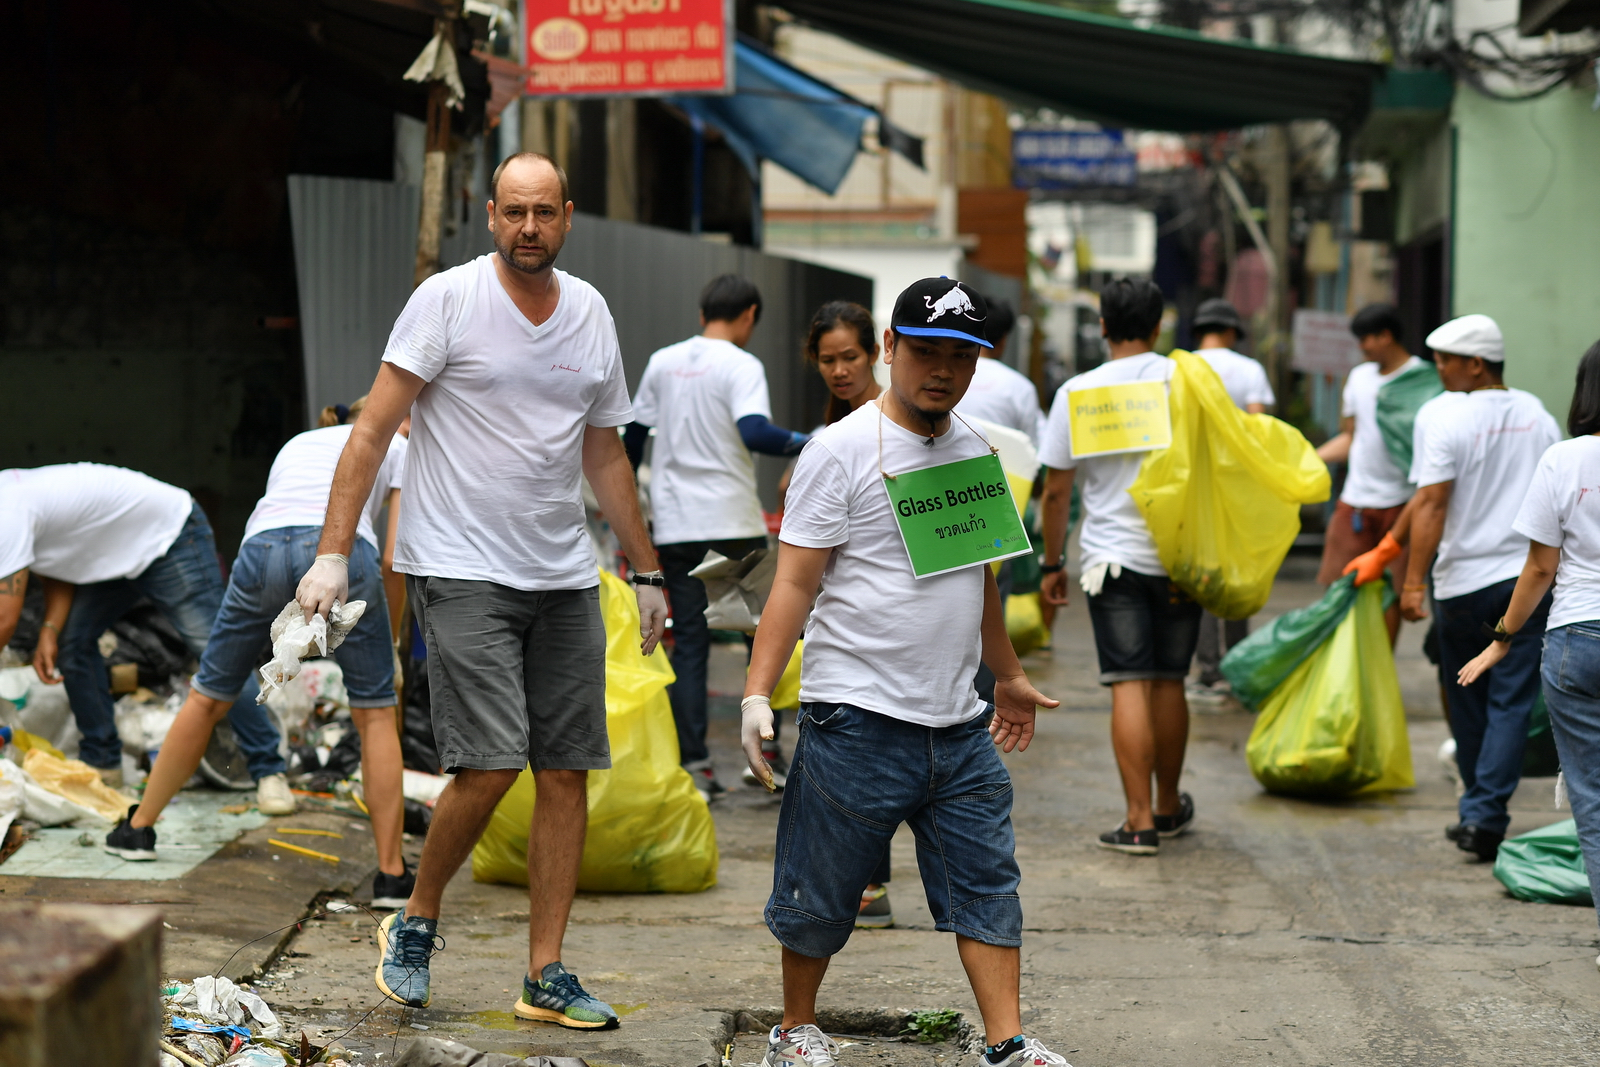 PTendercool-Event-Clean Up The World-190921-107